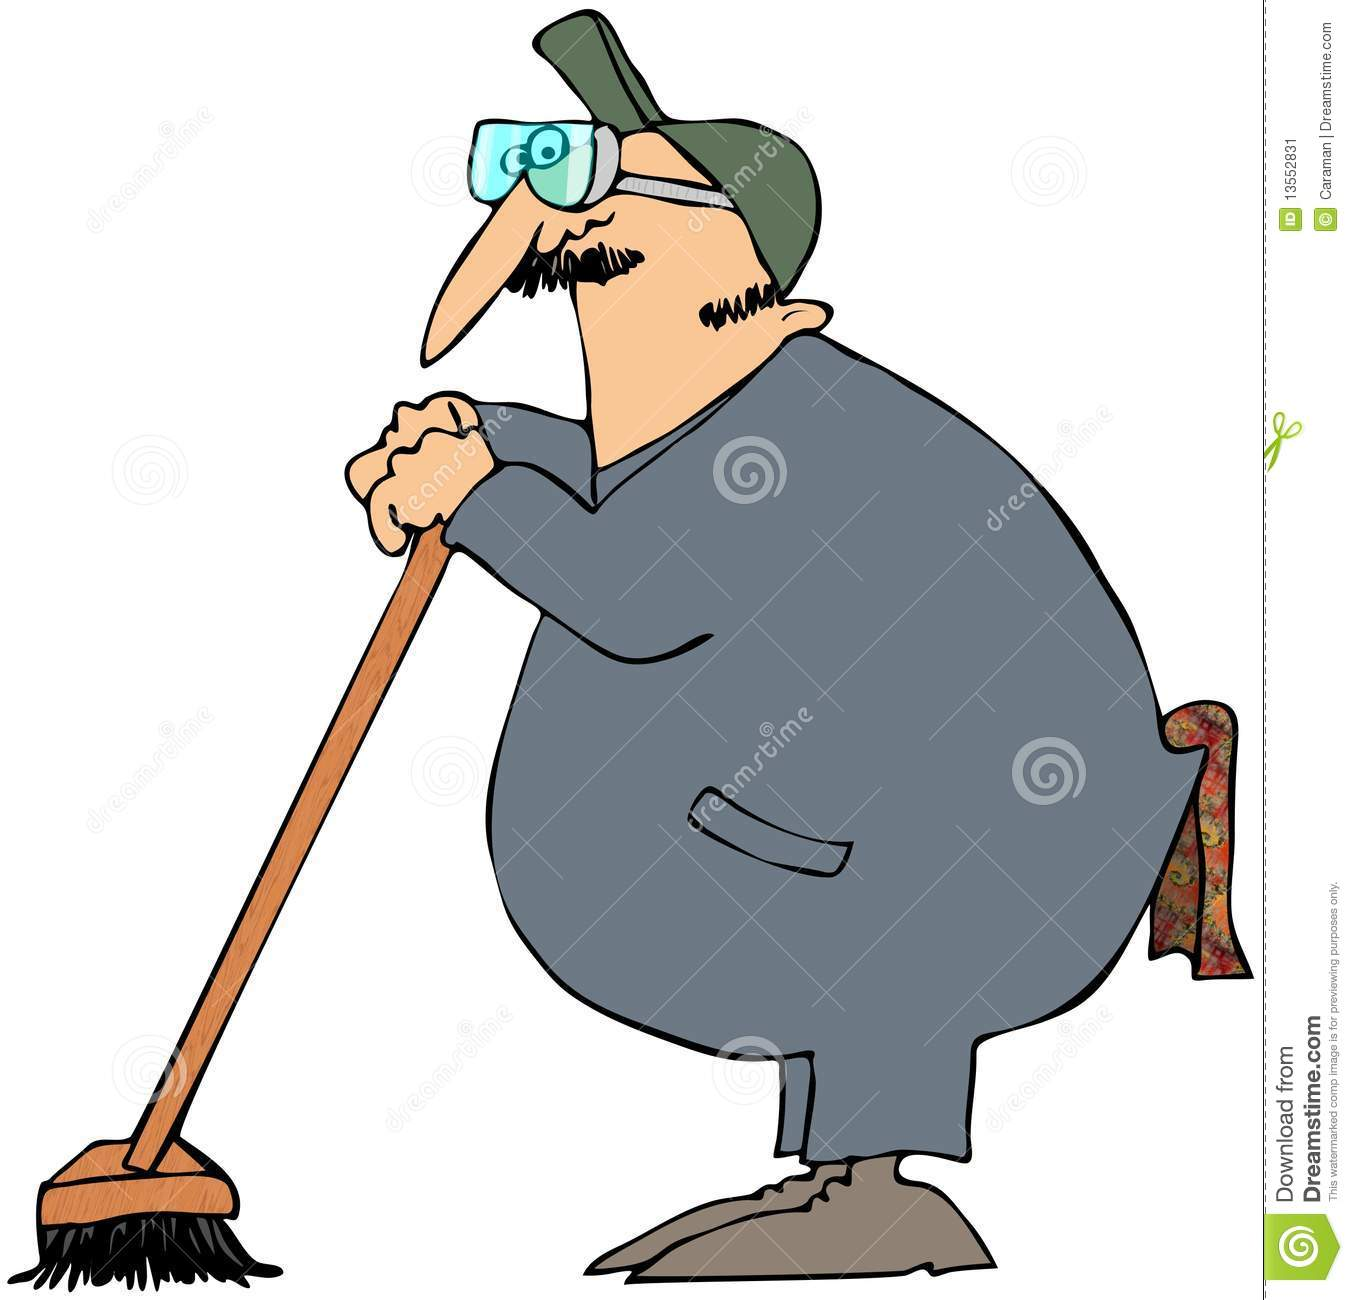 Janitor Leaning On A Broom Stock Illustration